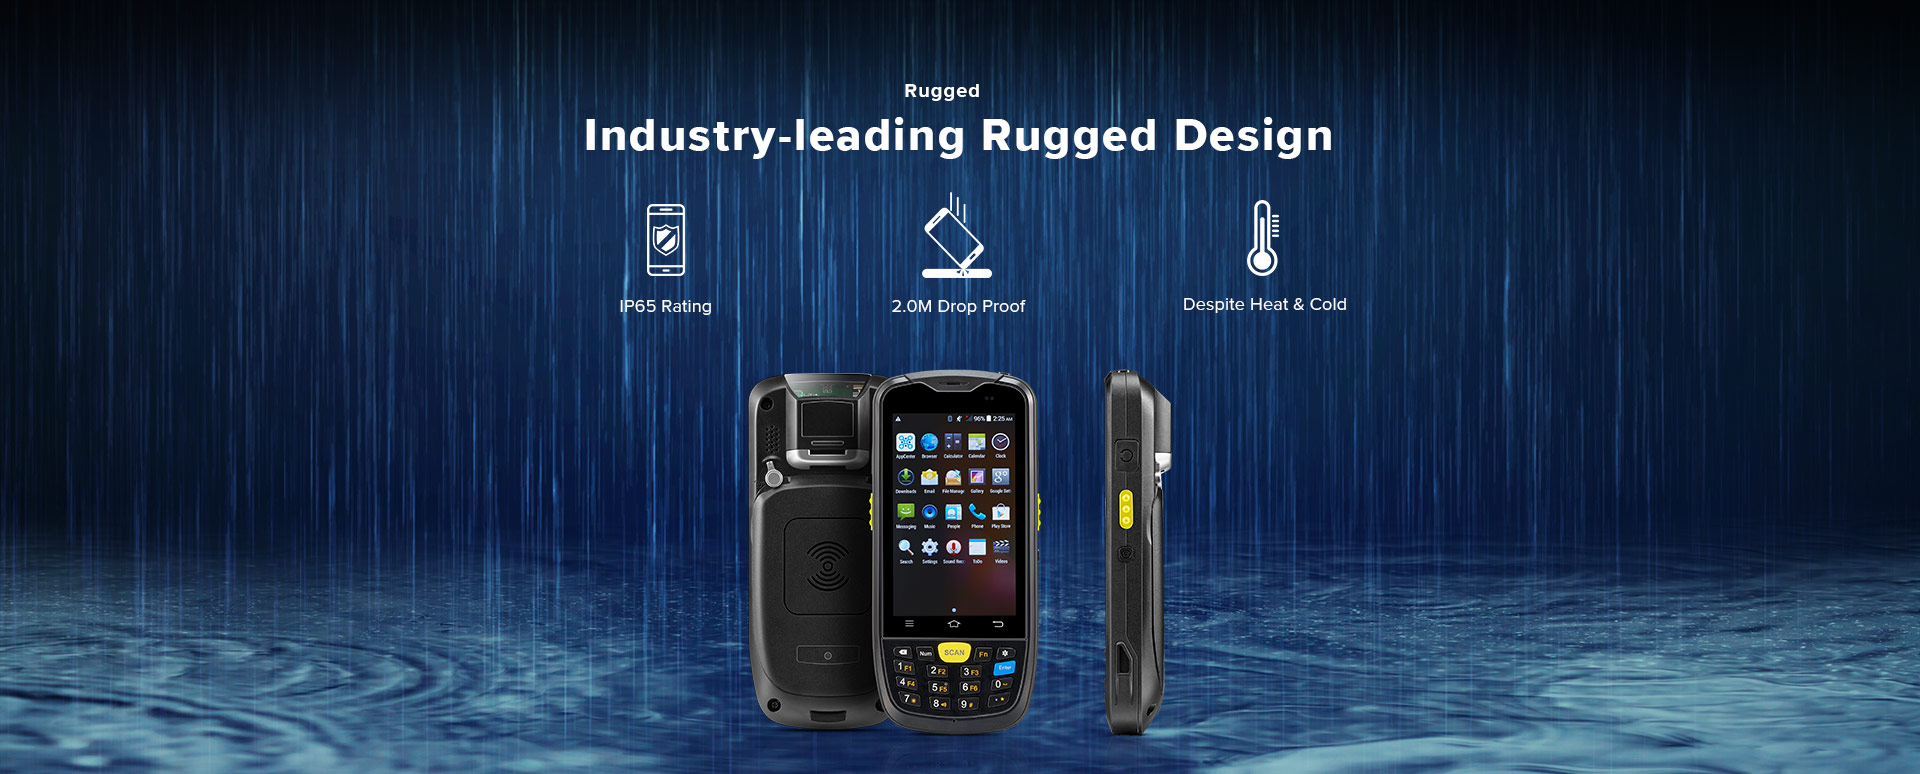 C6000 Rugged Handheld Computer Android - Industrial grade